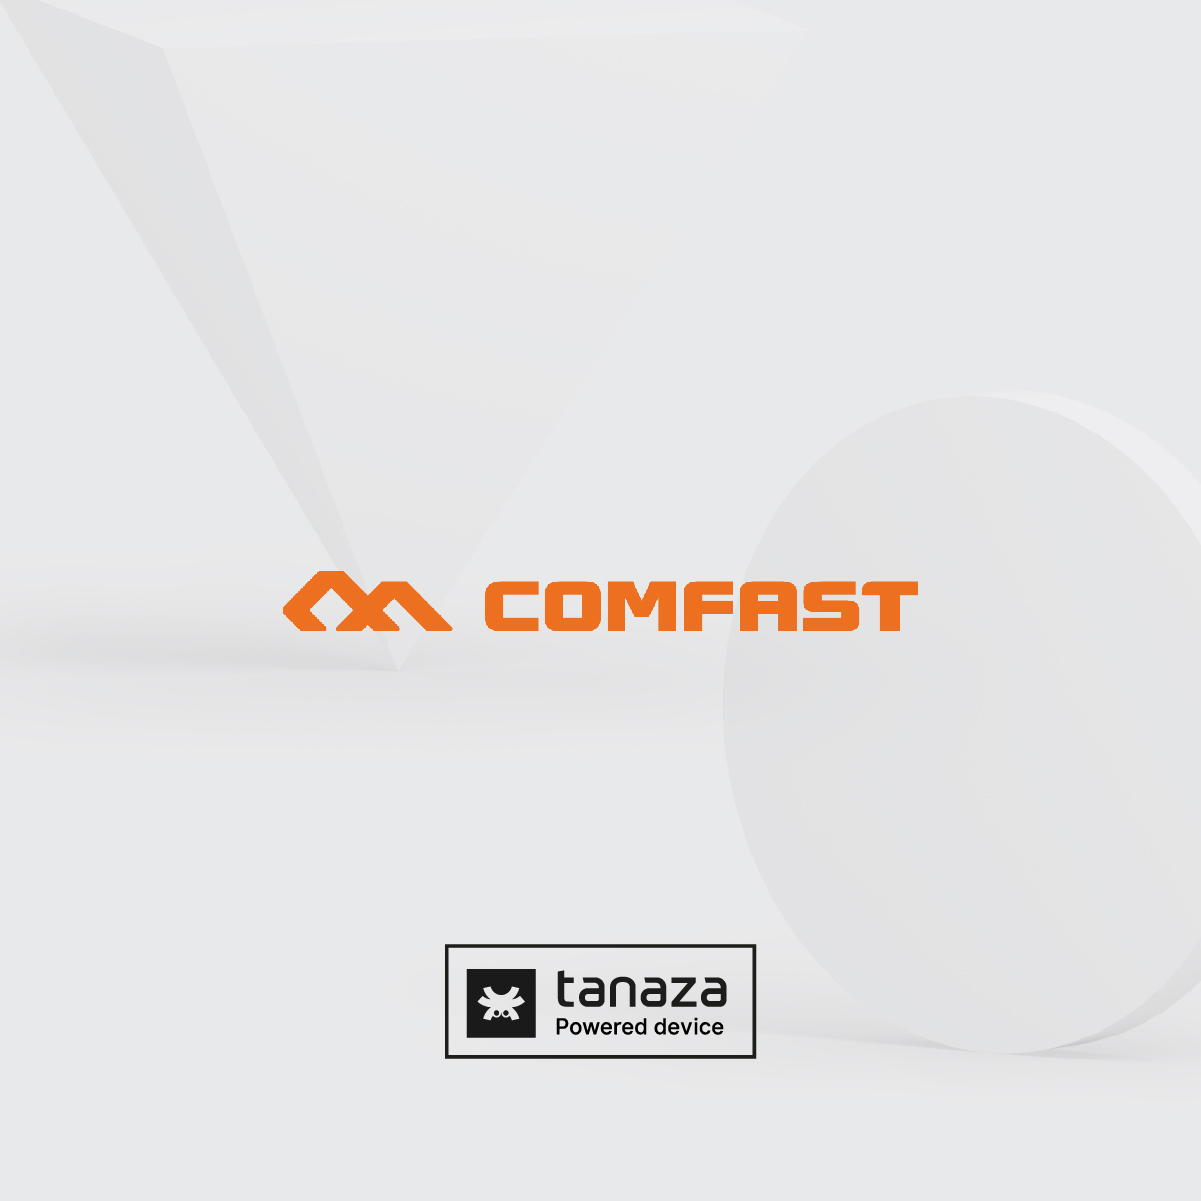 Comfast joins the Tanaza Powered Device